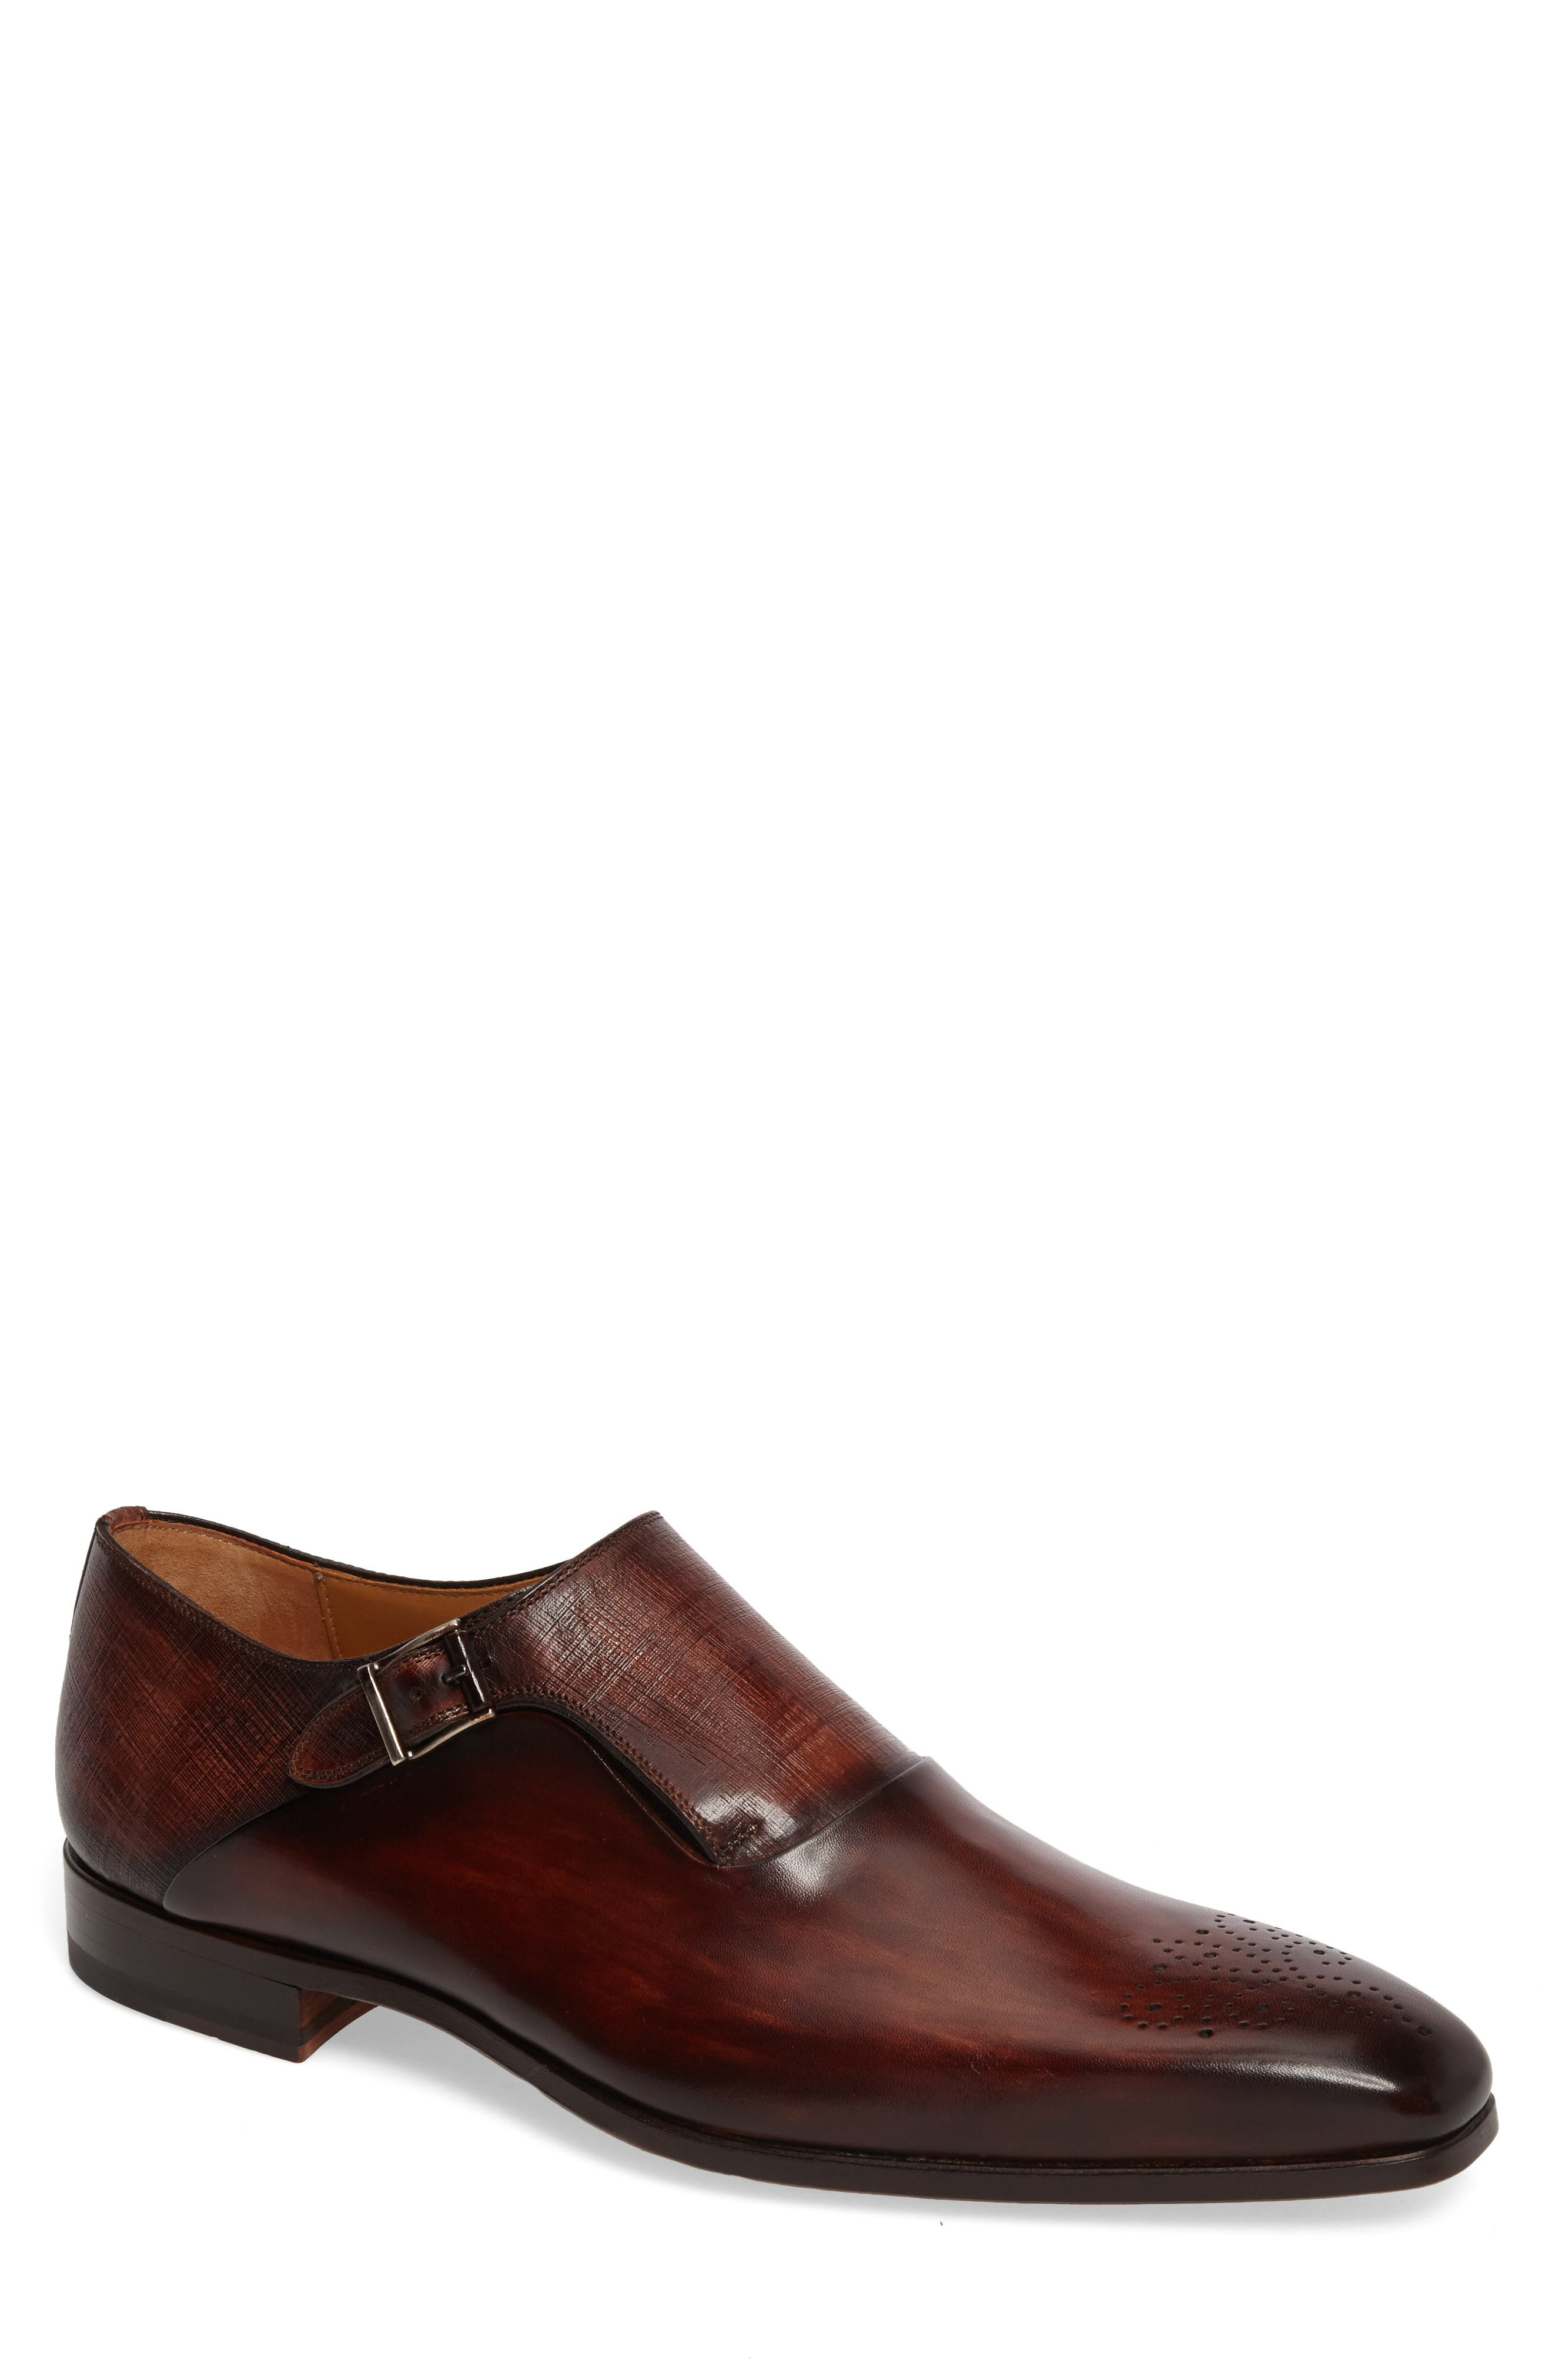 Alternate Image 1 Selected - Magnanni Saburo Monk Strap Shoe (Men)